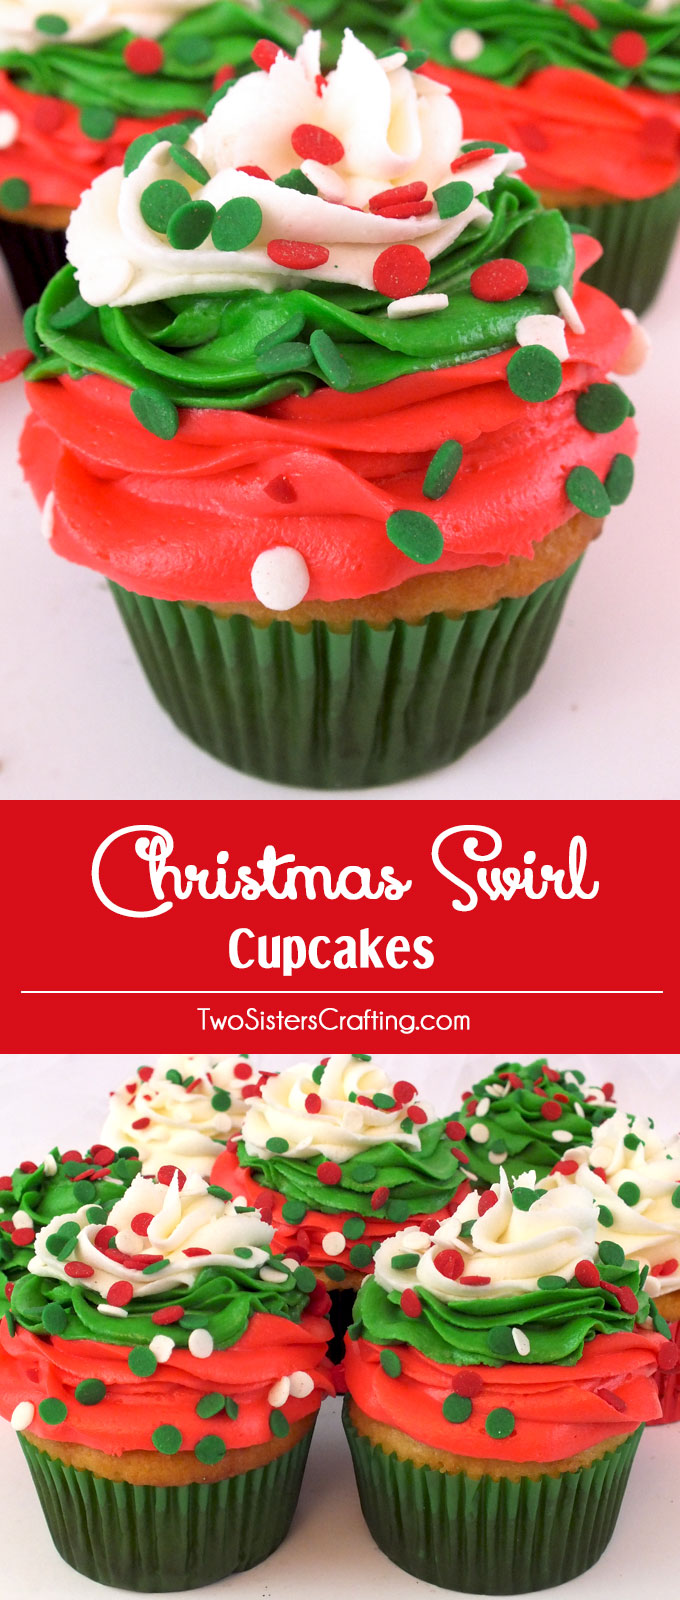 Christmas Swirl Cupcakes - a beautiful Christmas Cupcake for your holiday parties. Christmas Desserts never looked so good. Follow us for more great Christmas Treats ideas.